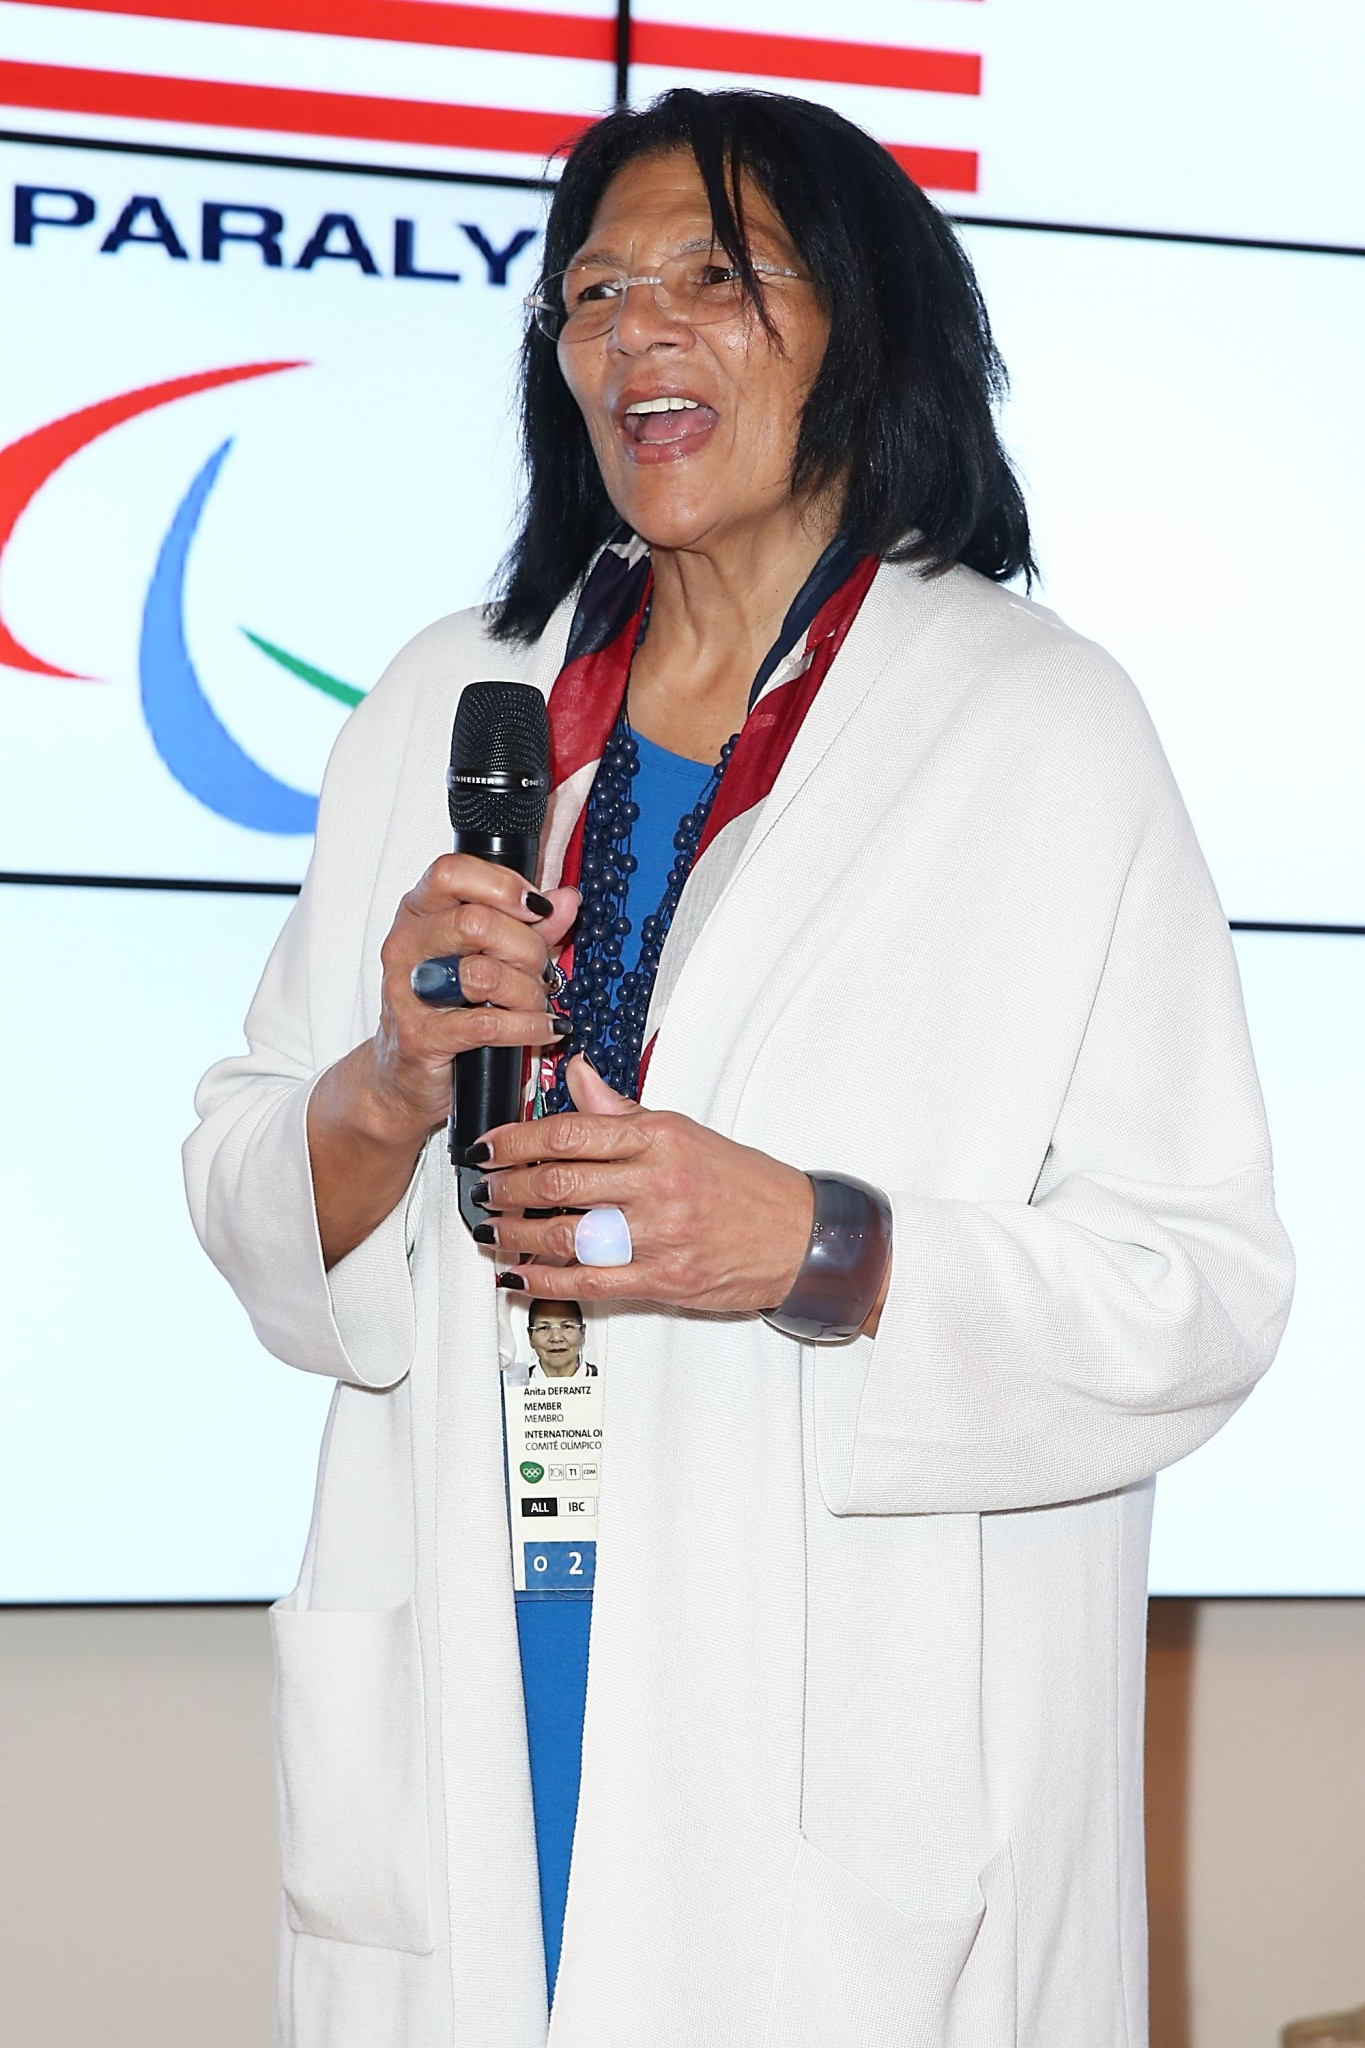 Anita DeFrantz made history as the first female IOC vice president ©Getty Images